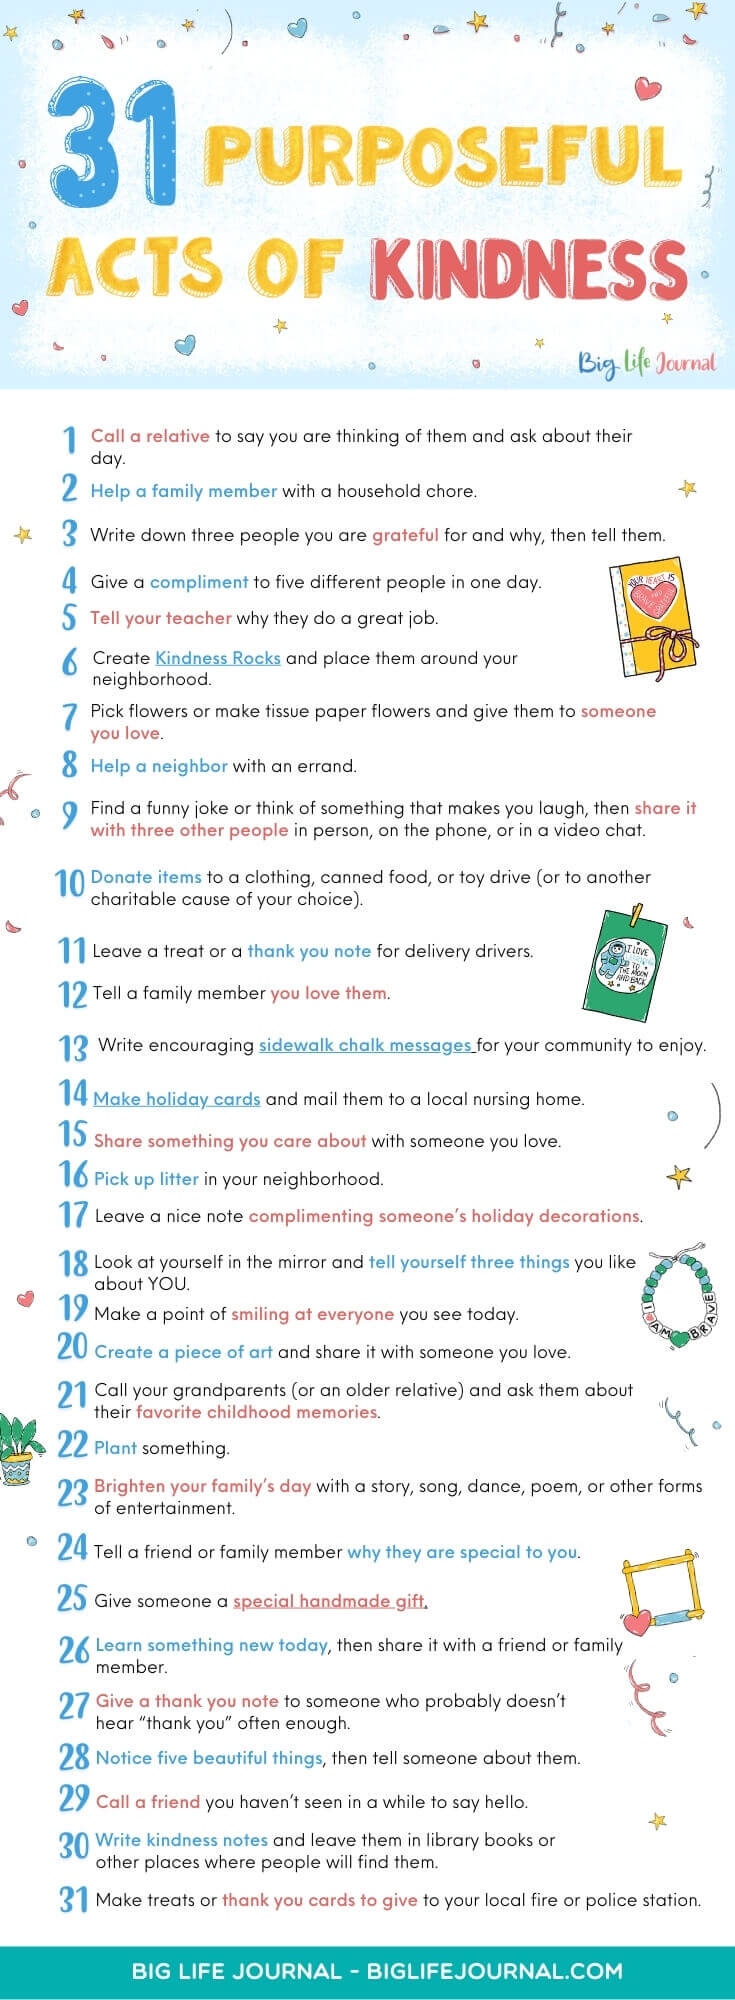 31 Purposeful Acts of Kindness